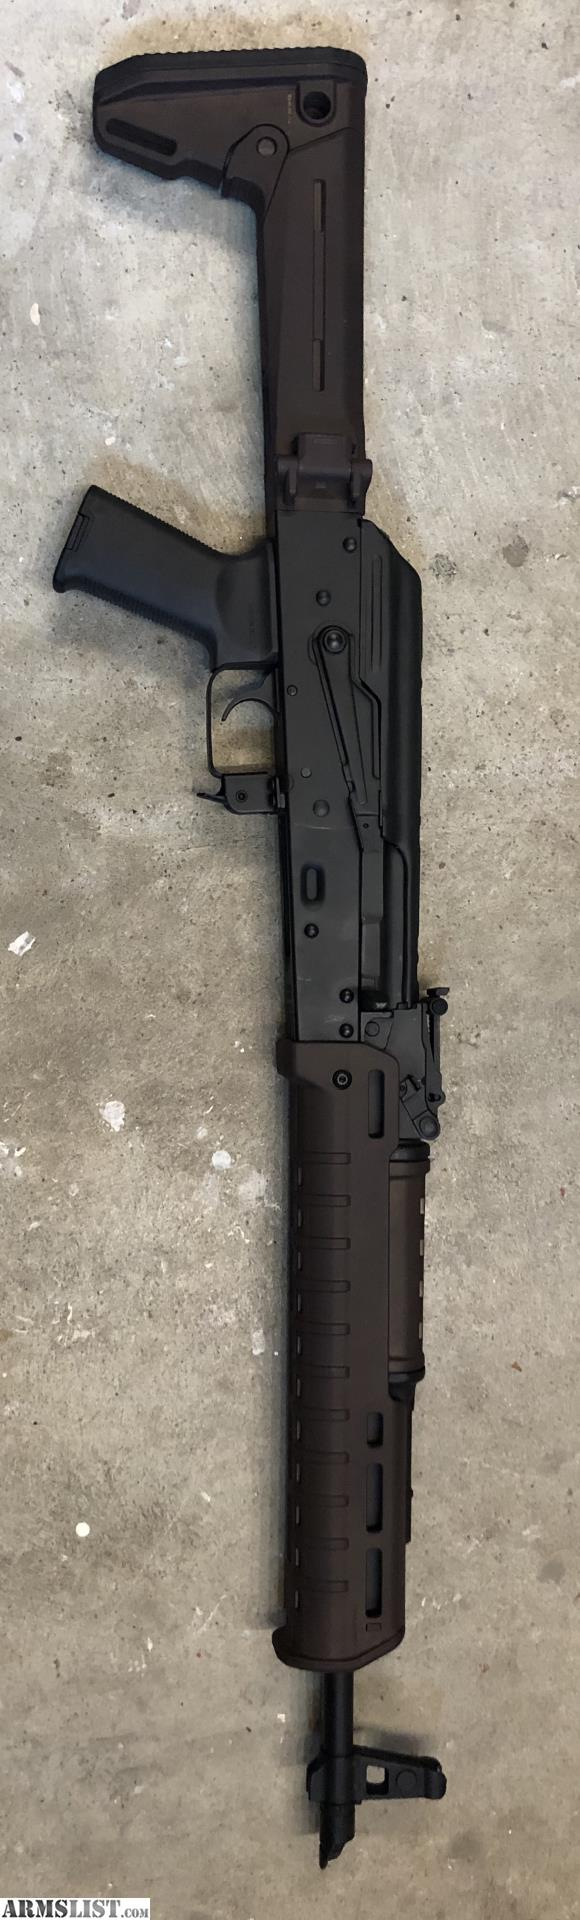 Wts Maadi 7 62x39 Akm With Magpul Zuhkov 825 Shipped Ar15 Com The city is the county seat of davidson county and is located on the cumberland river. ar15 com